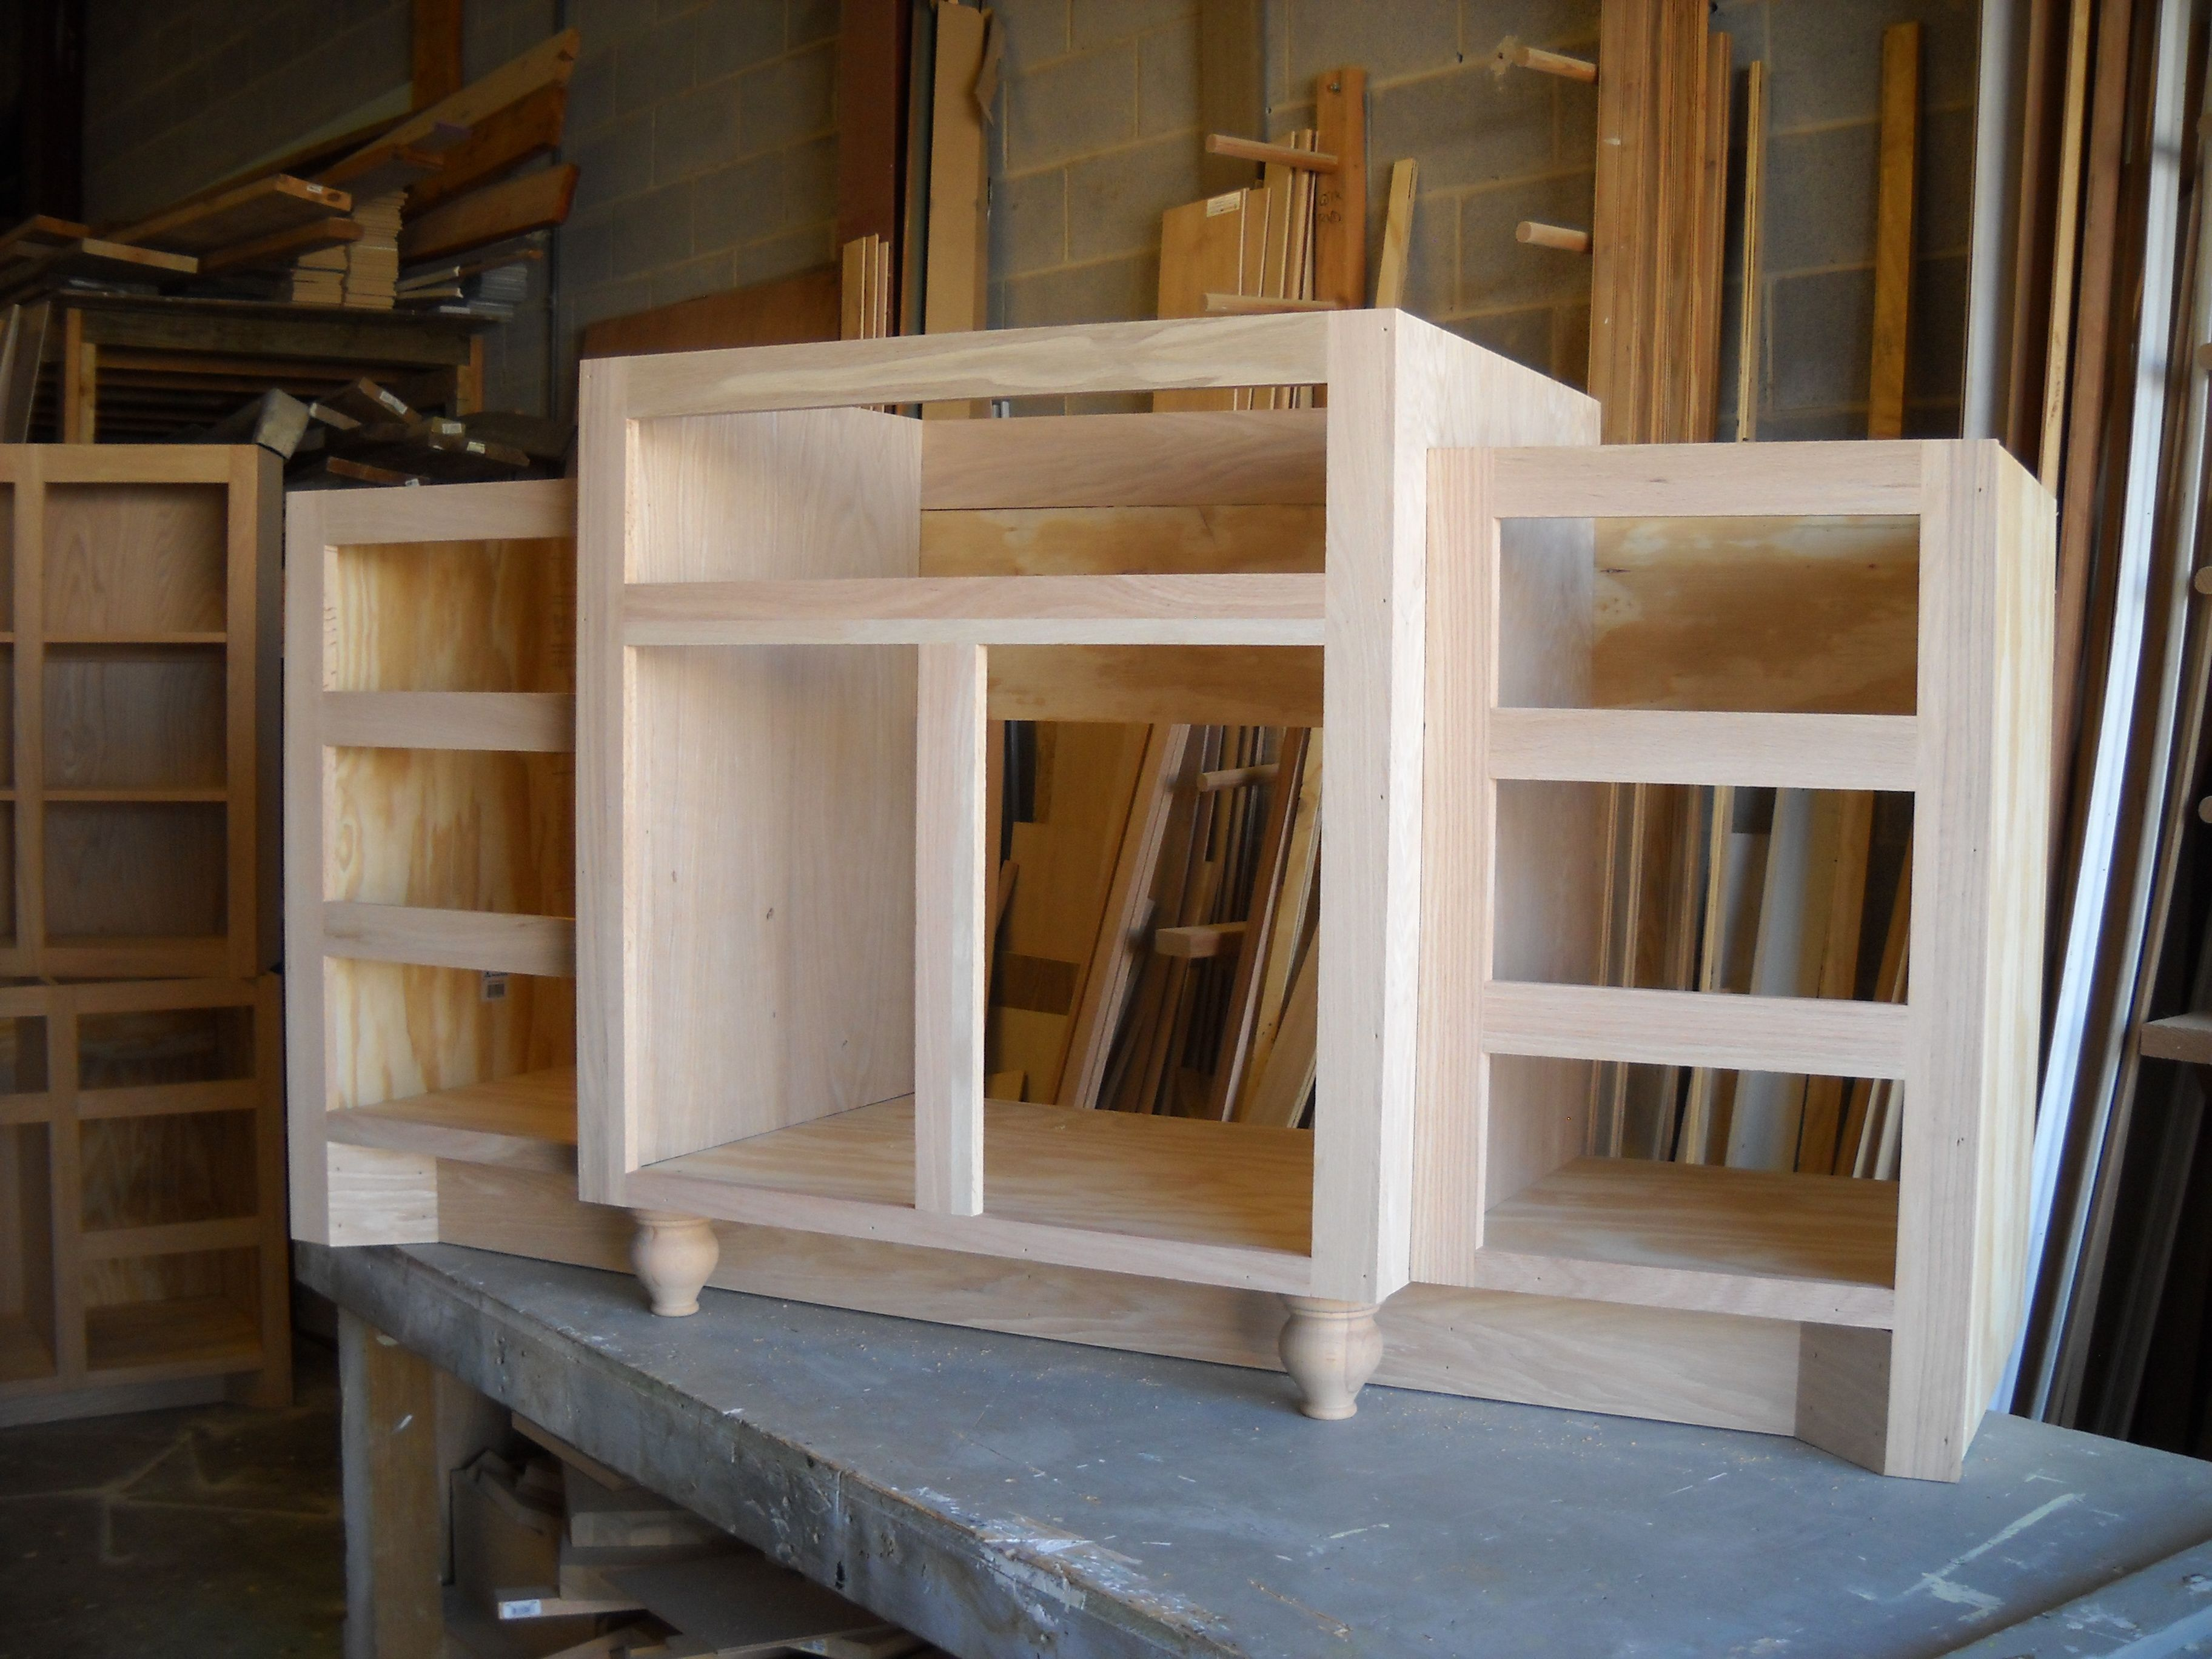 How To Make A Bathroom Vanity Cabinet Woodworking Building A Bathroom Vanity From Scratch Plans Pdf